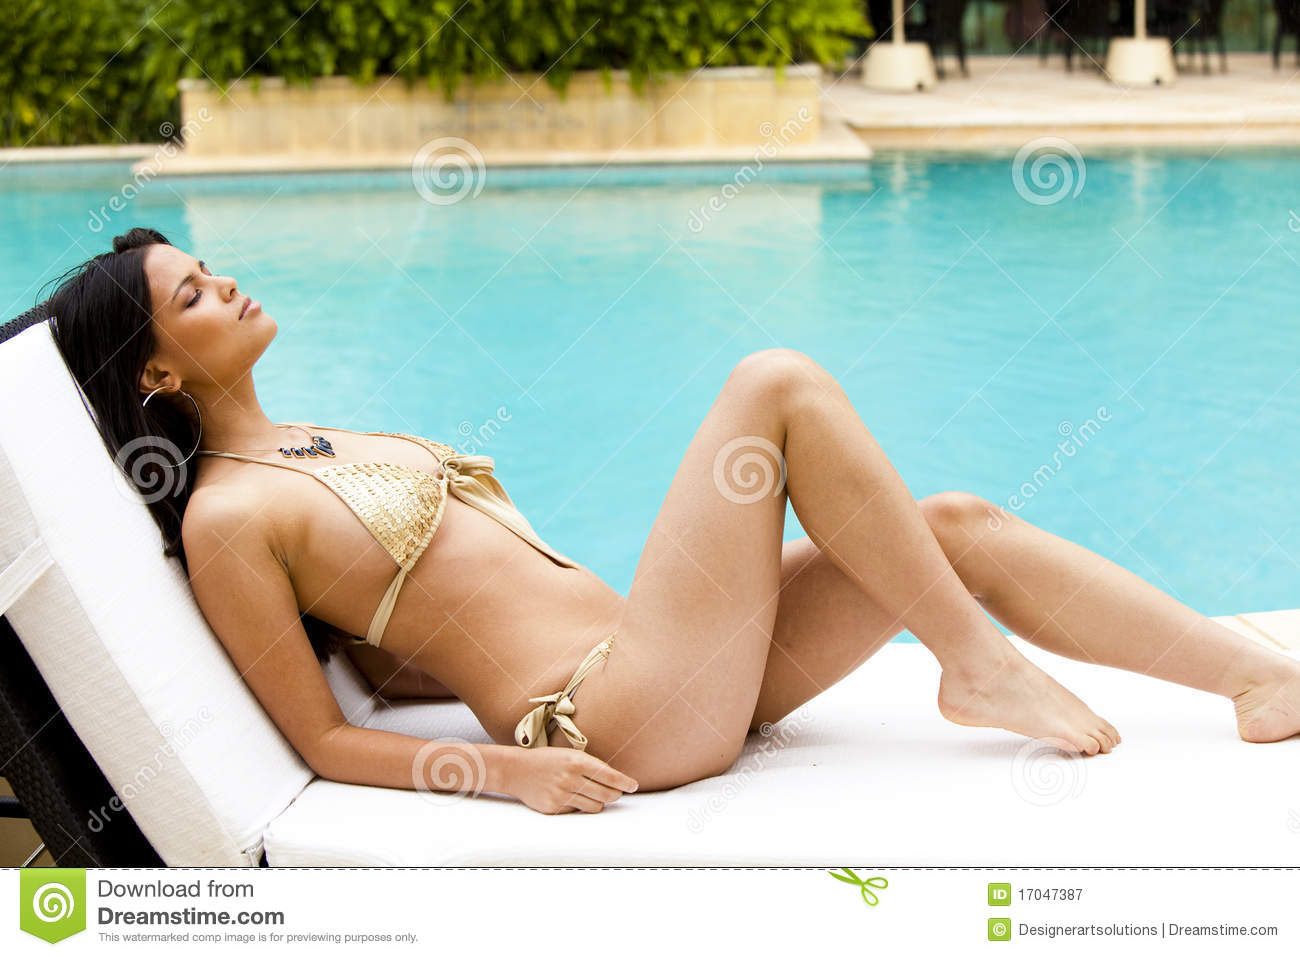 Young Woman Sunbathing Poolside In A Bikini Royalty Free Stock graphy Image